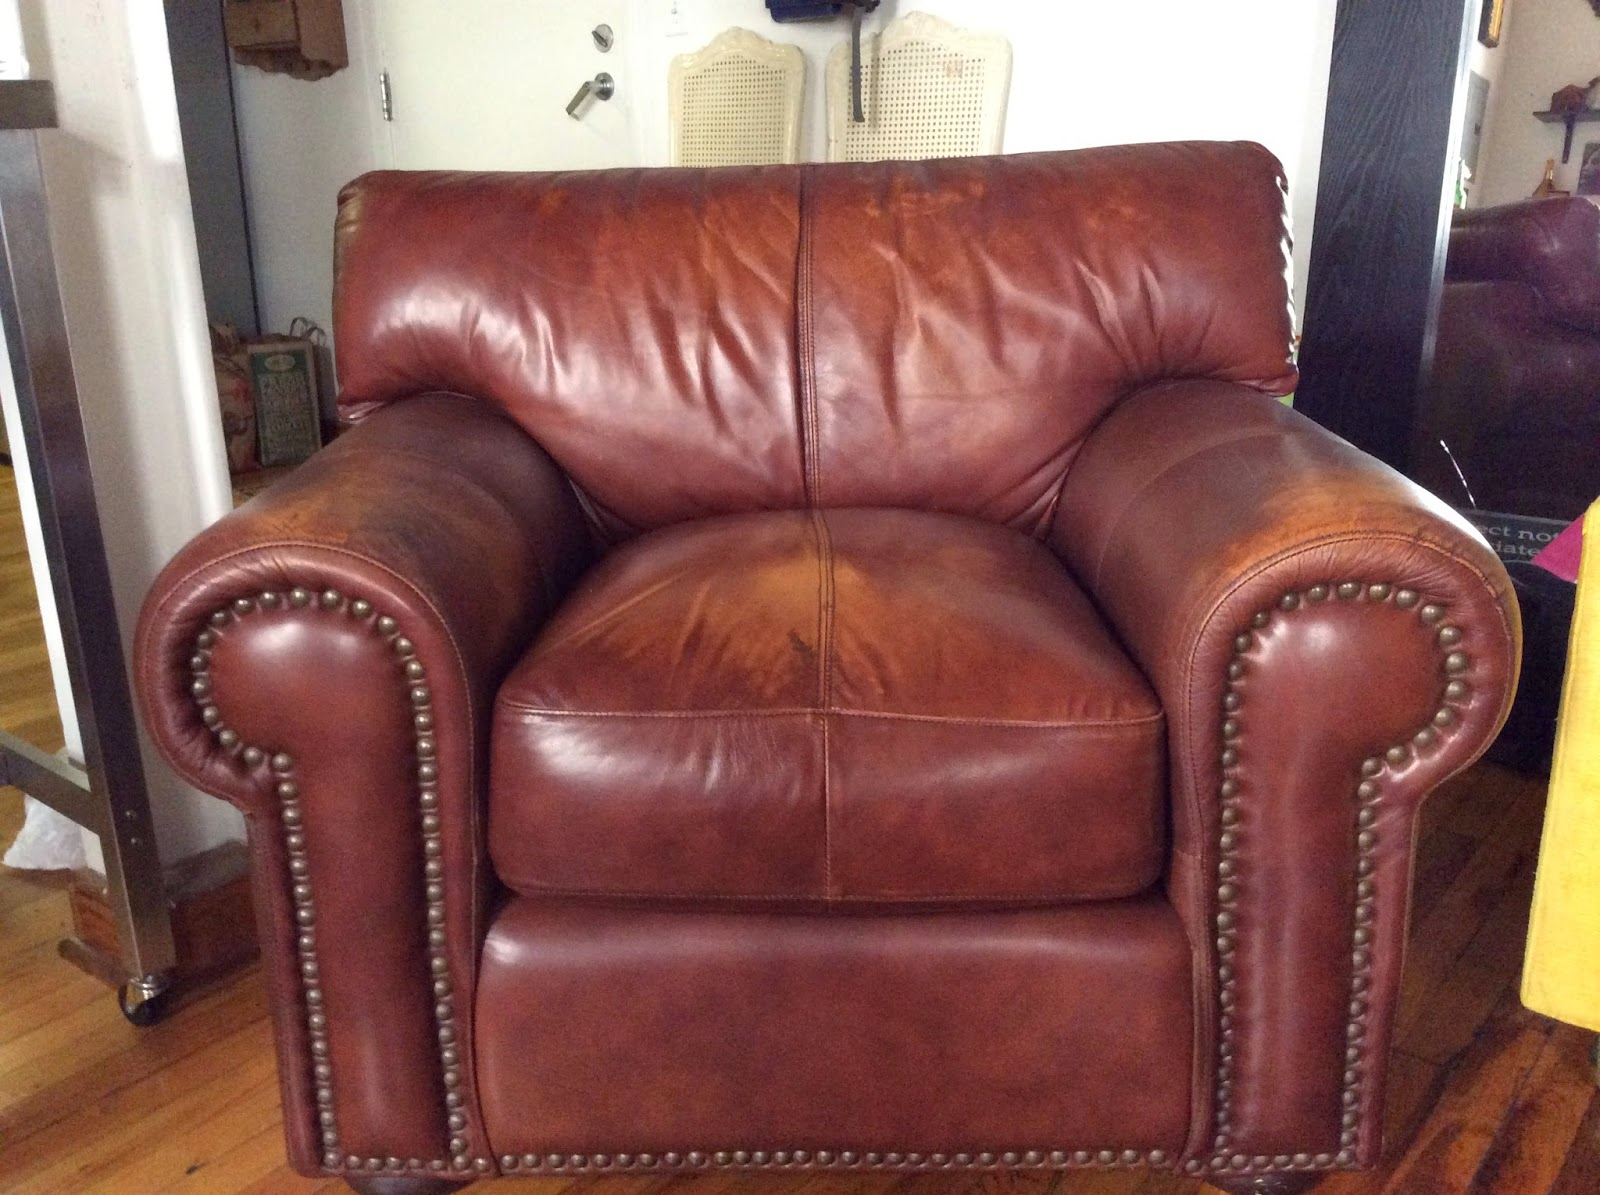 robinson and leather sofa sectional sofas with a chaise lounge revamp brown cigar chair by